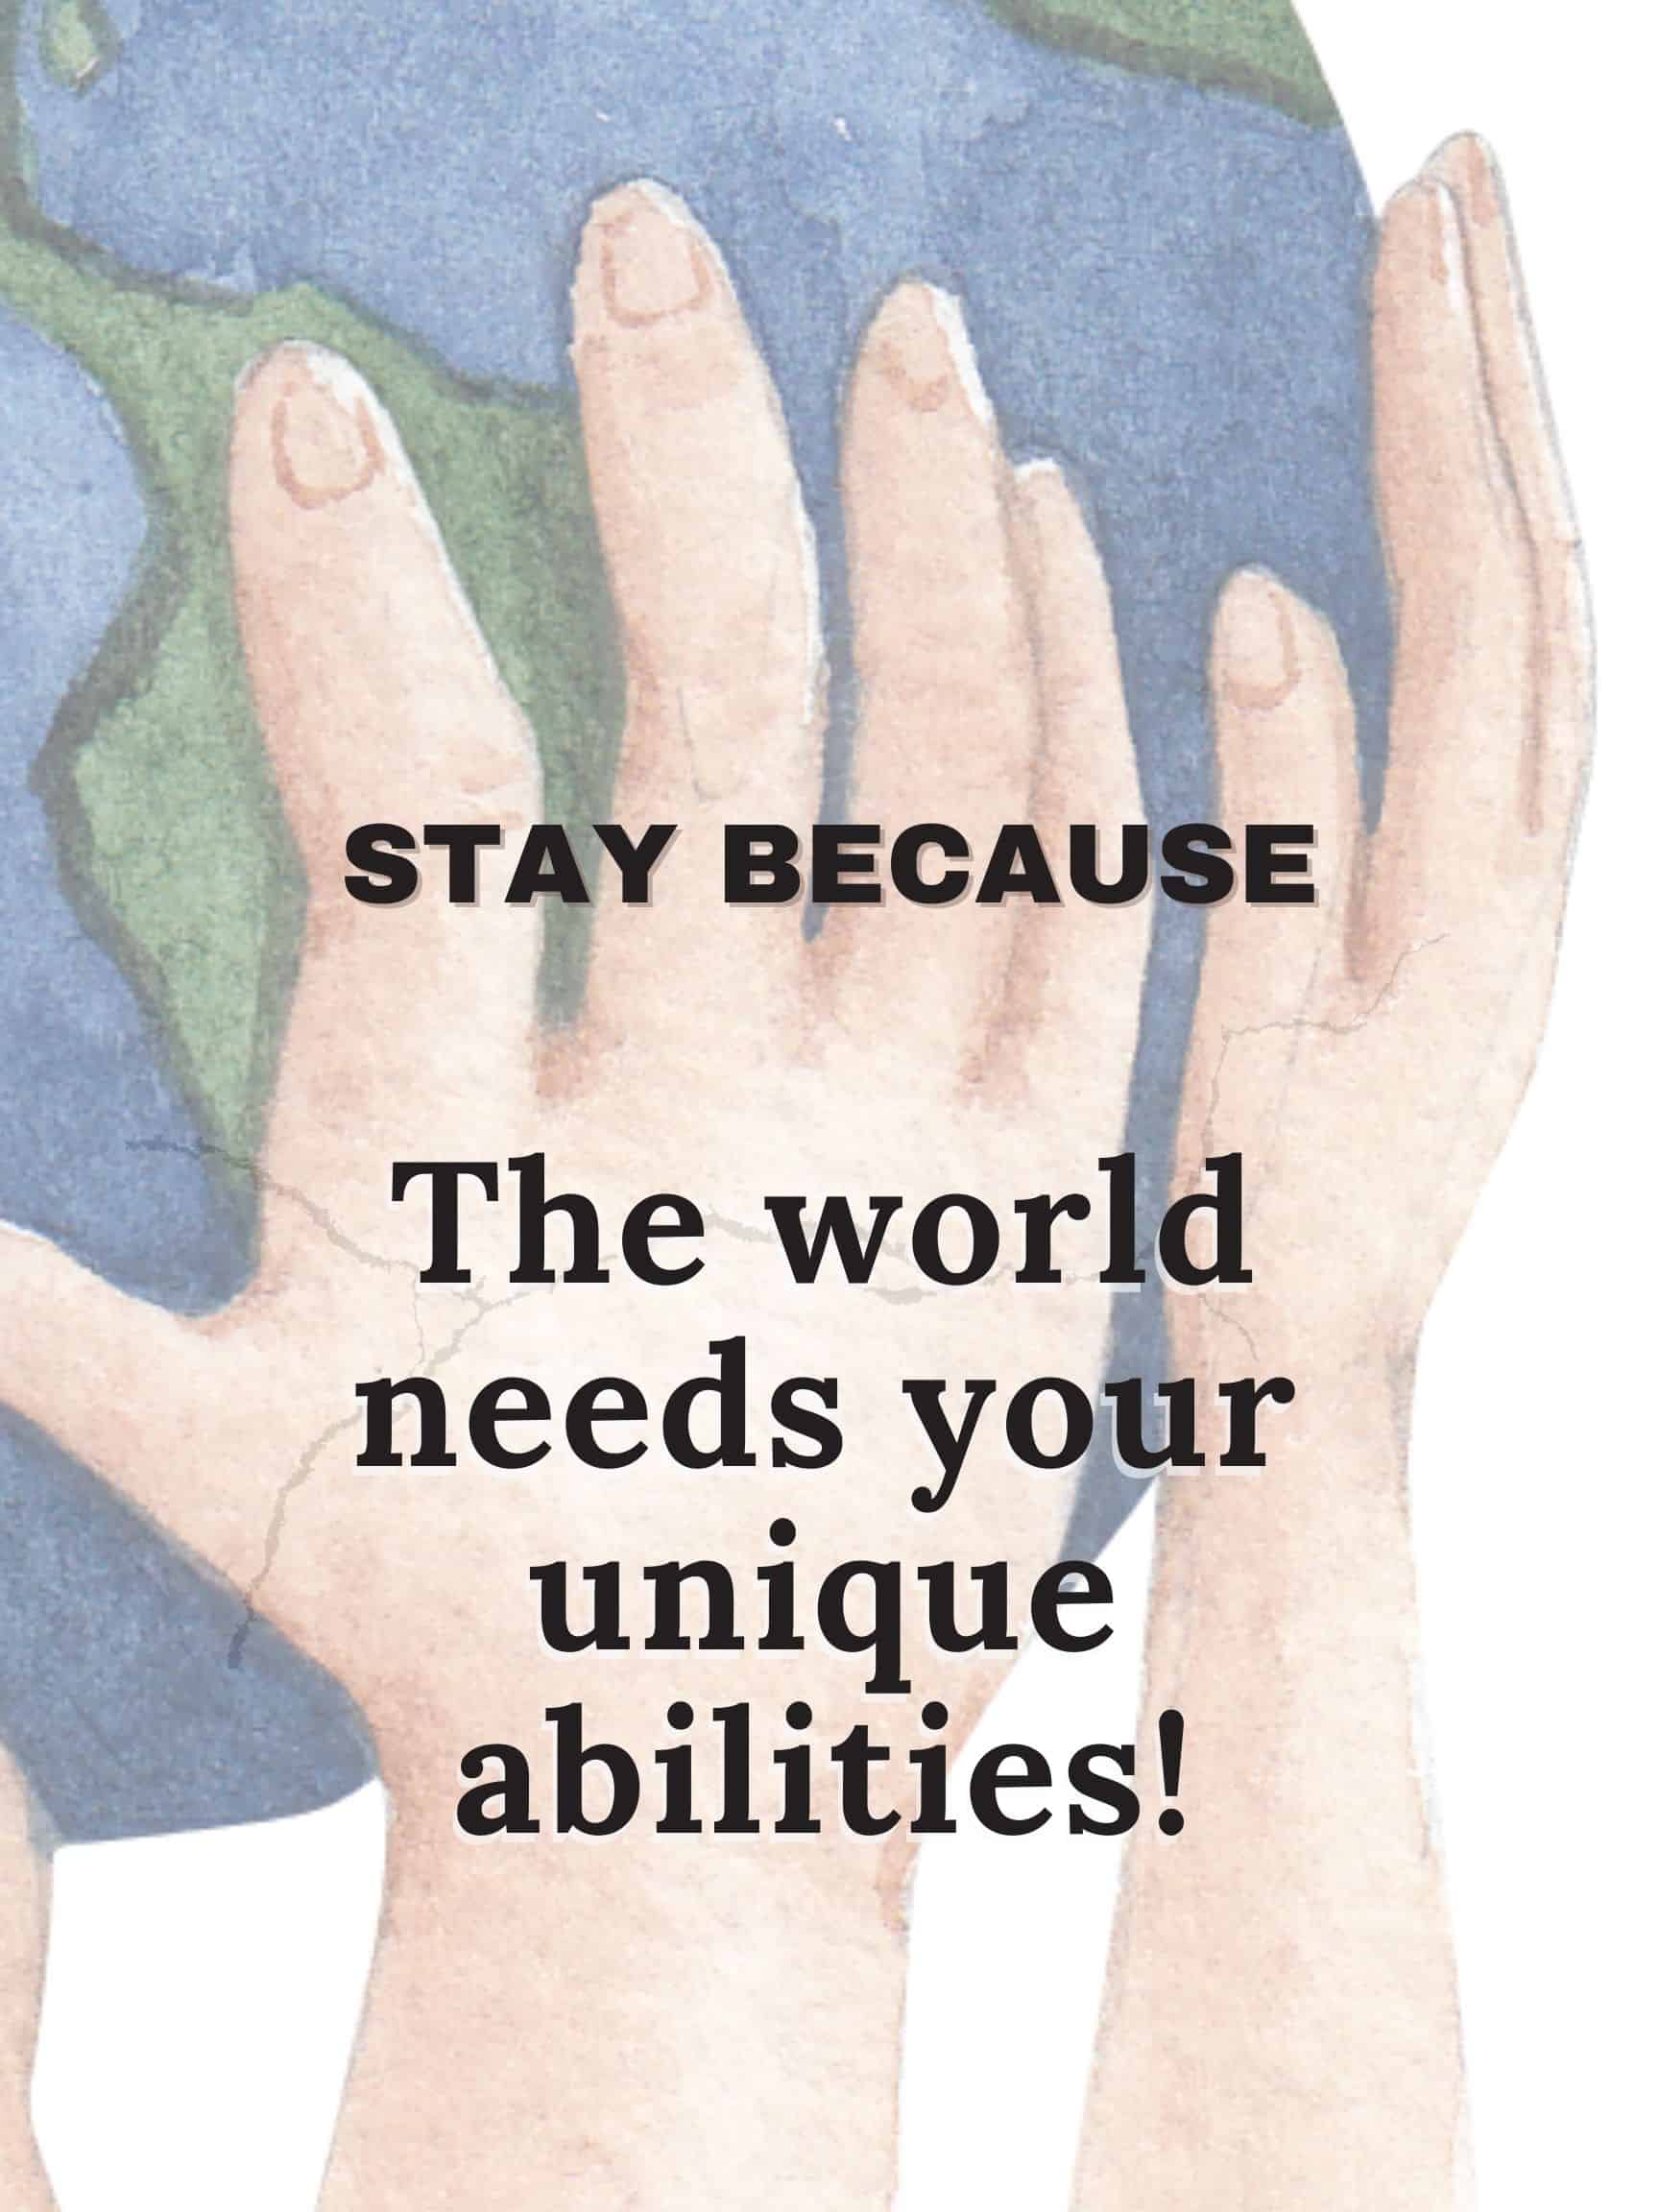 Stay because the world needs your unique abilities #StayBecause